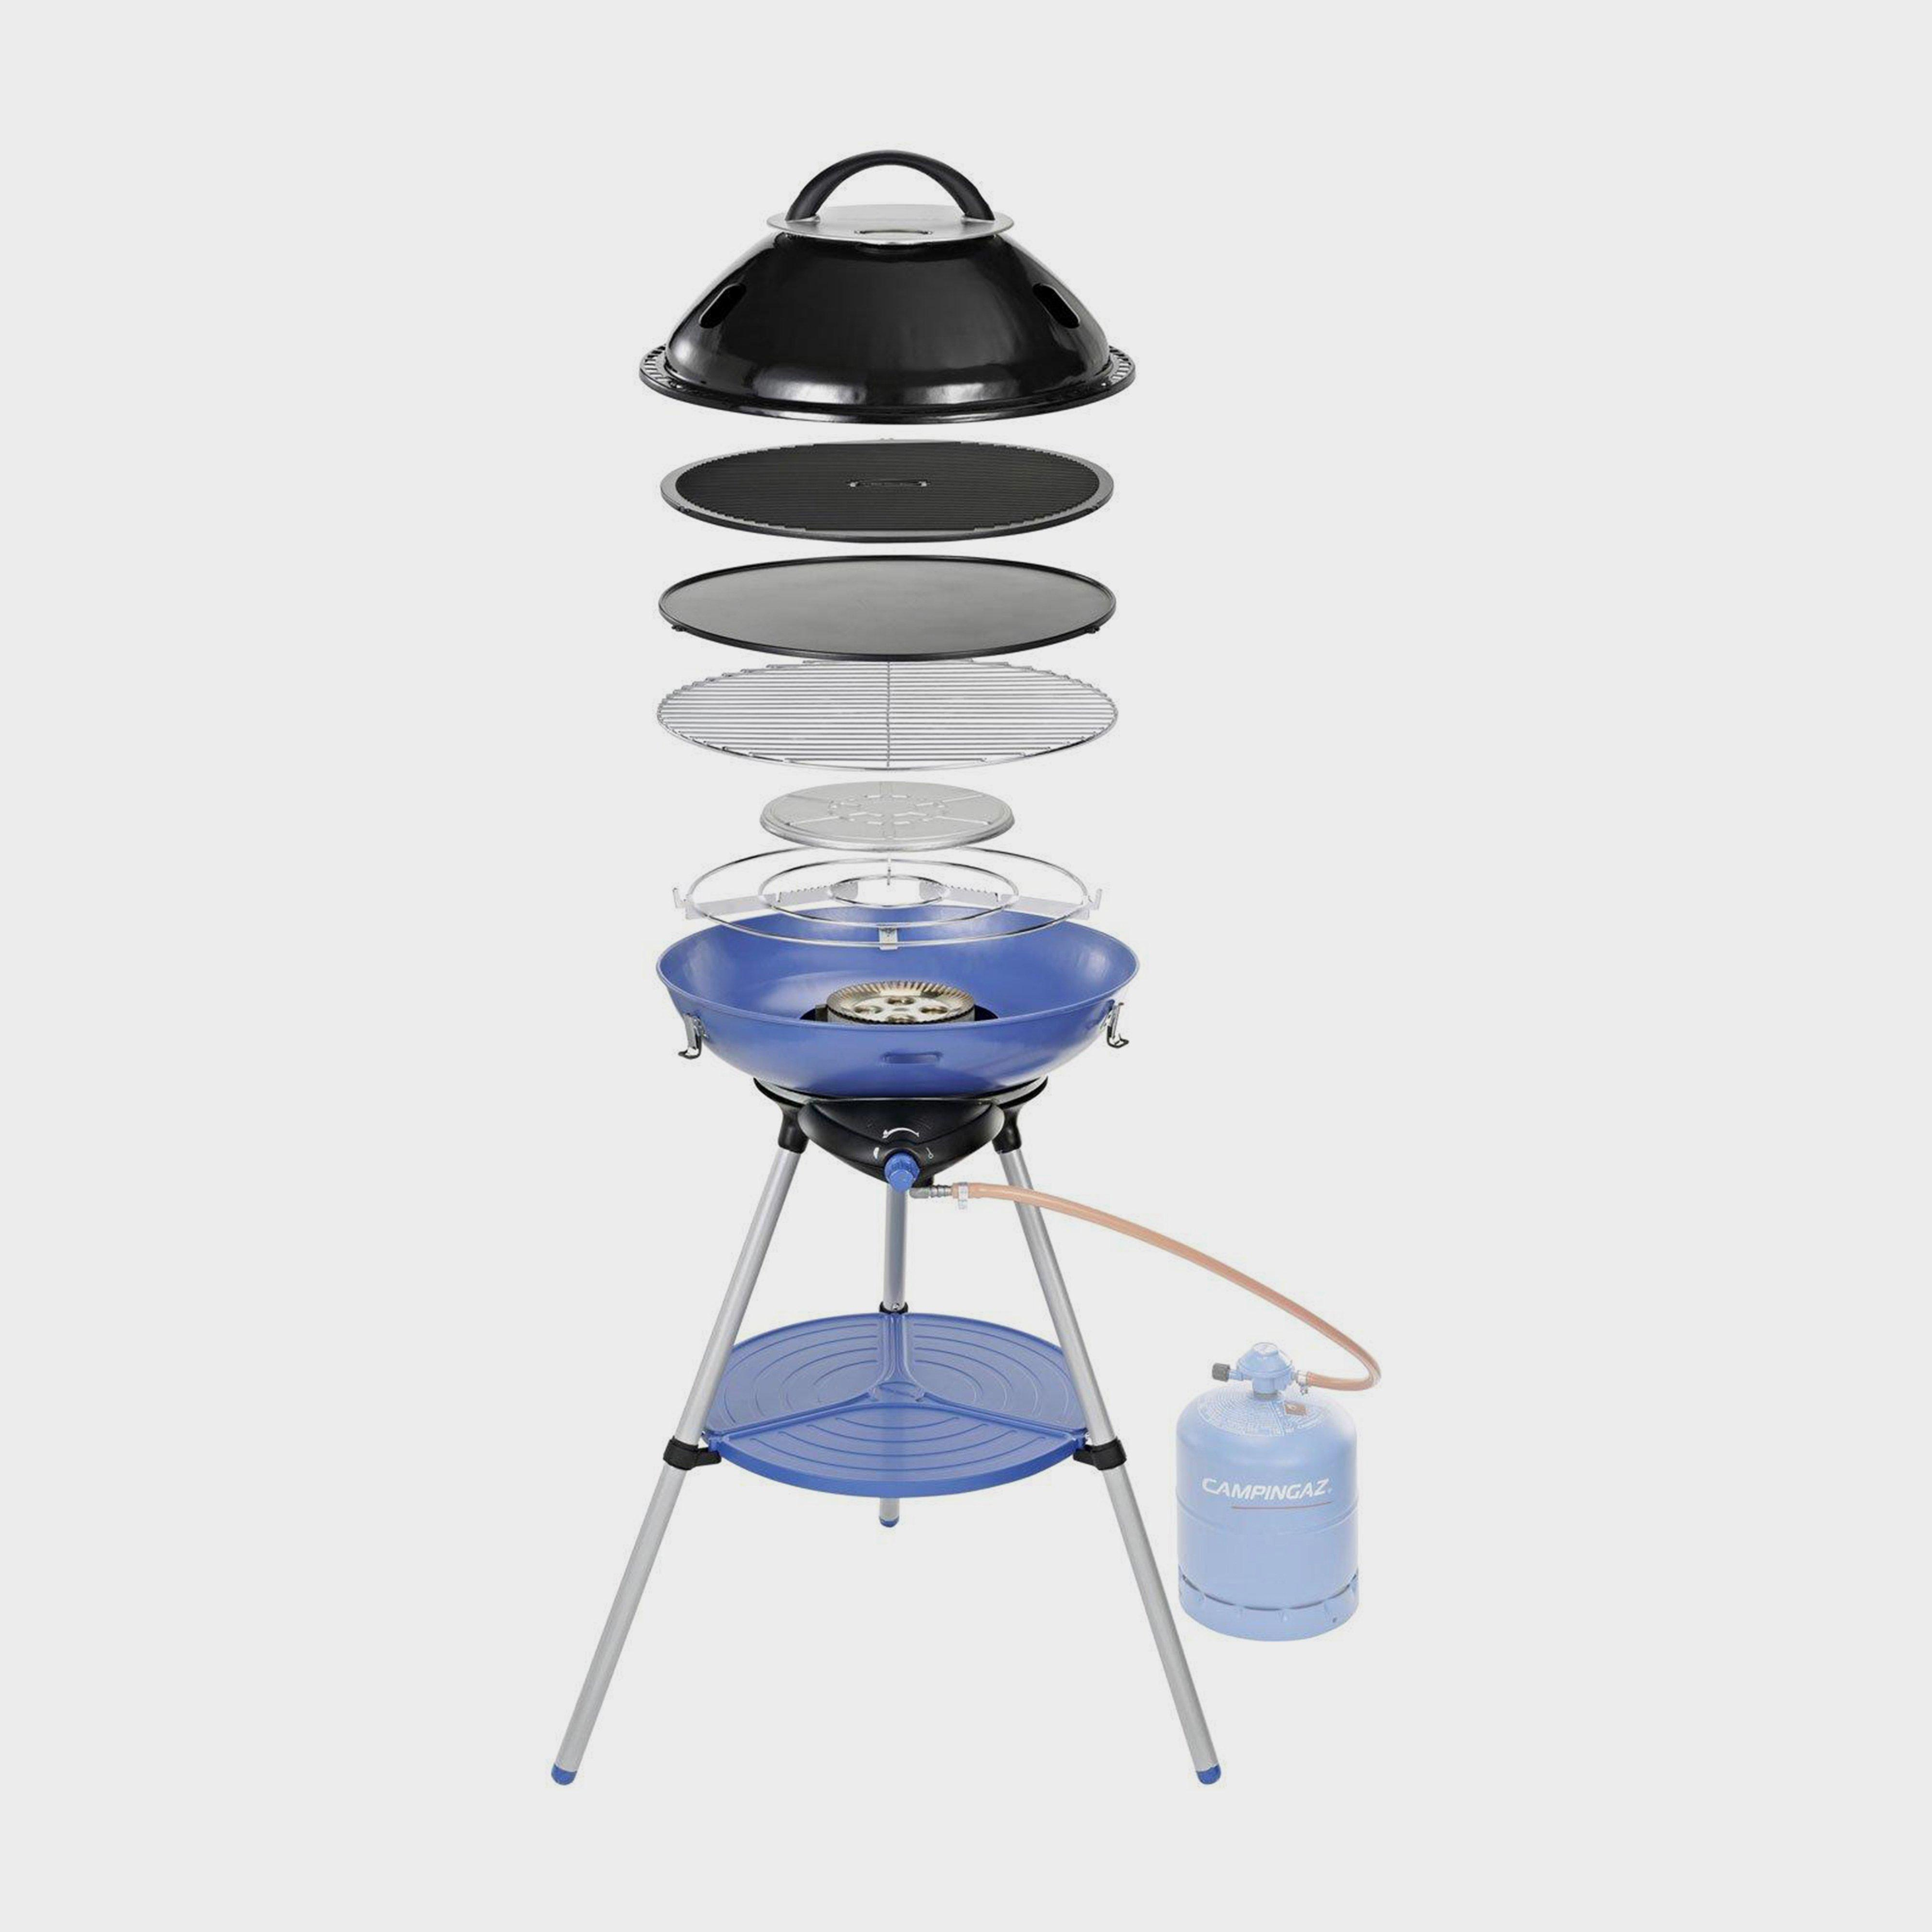 Campingaz Campingaz Party Grill 600 - Blue, Blue